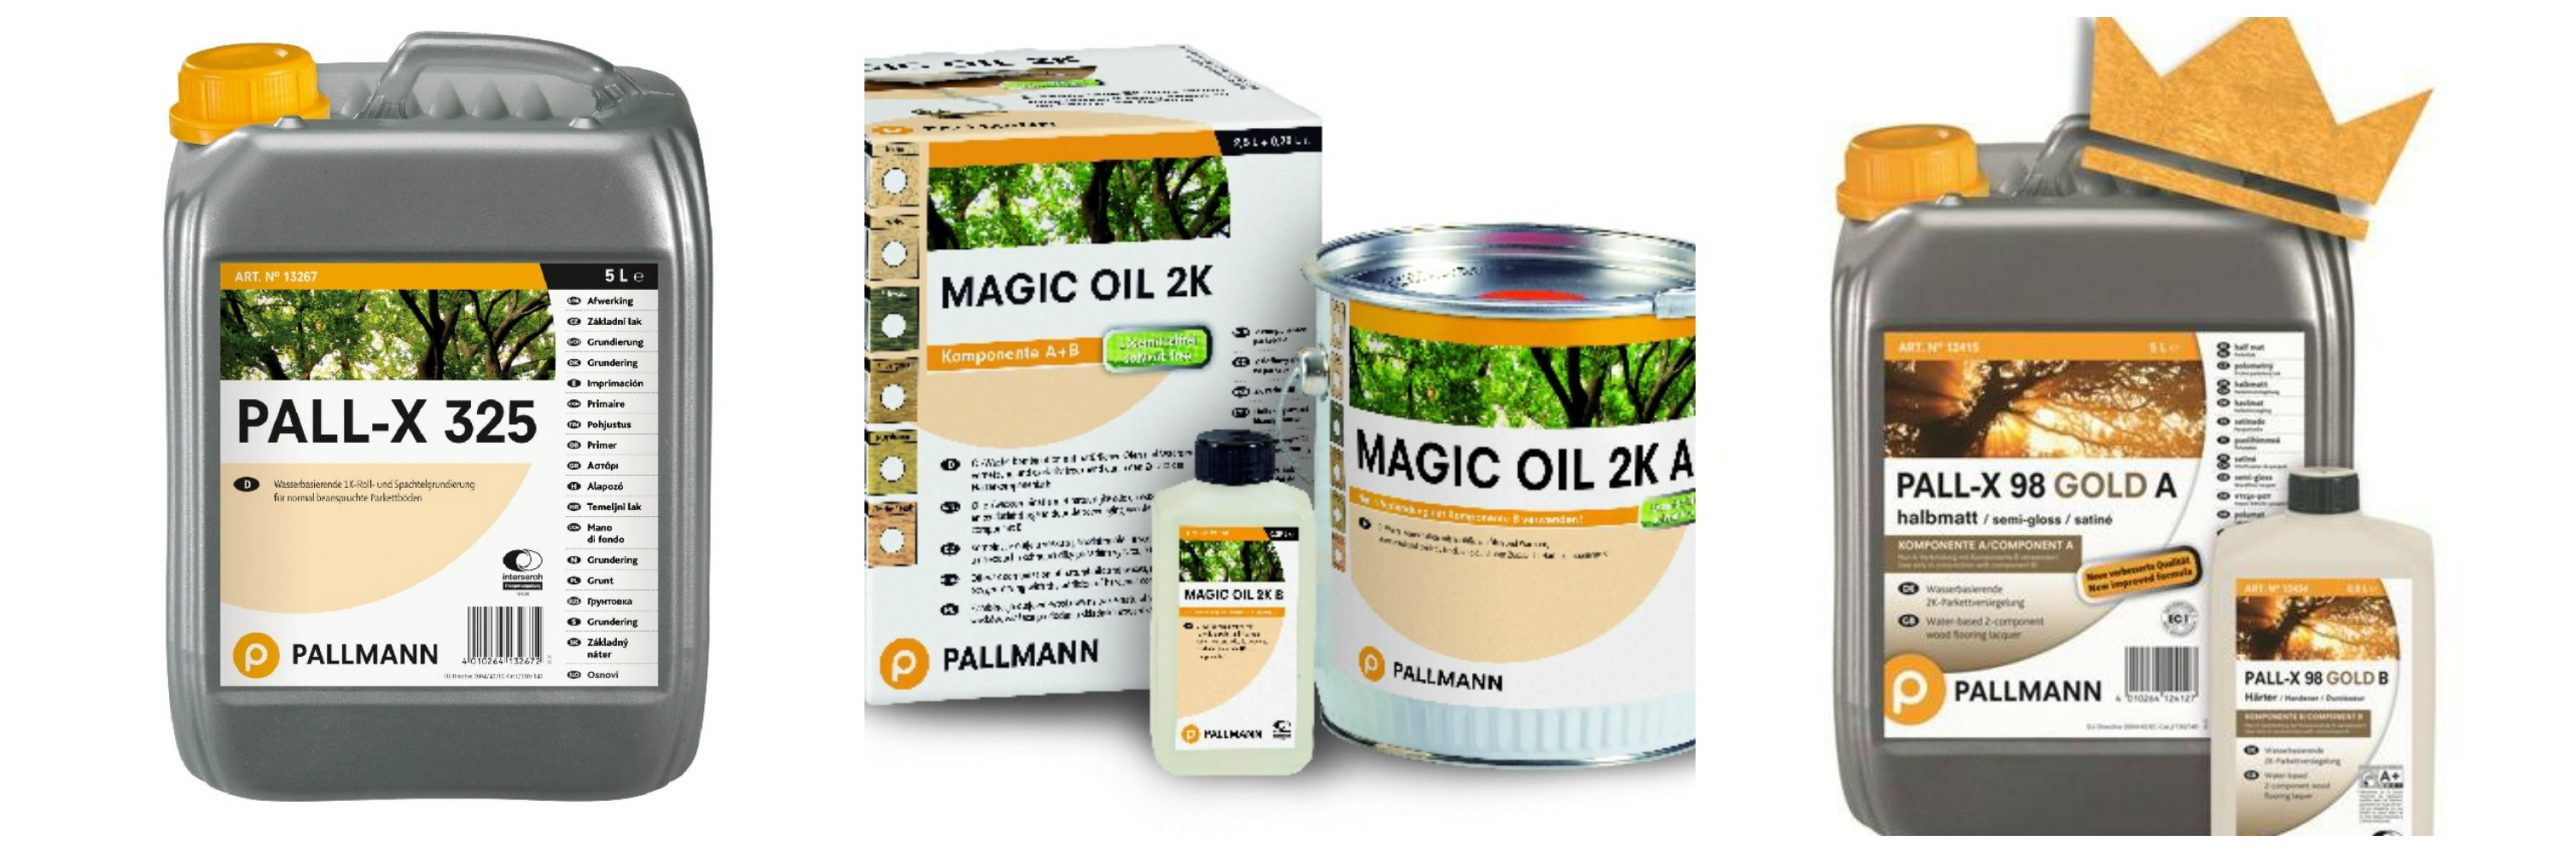 Pallmann Wood Floor Oil Range